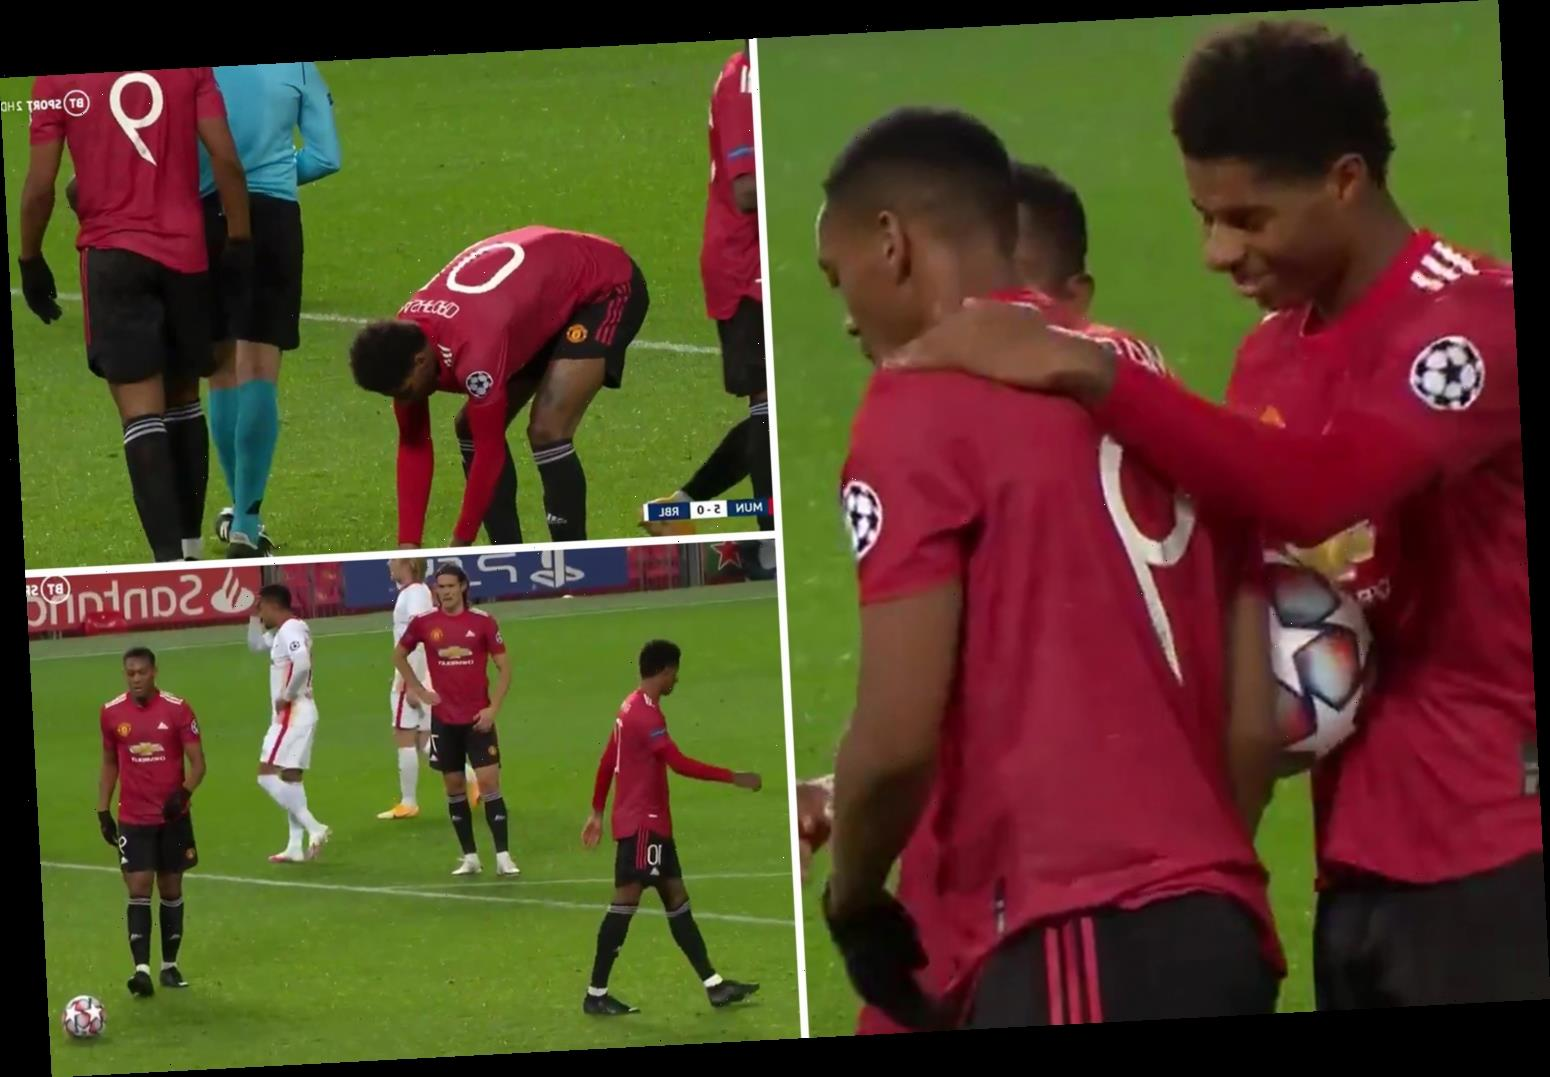 Watch Marcus Rashford hand penalty to Martial even though he's on a hat-trick as Man Utd star dubbed 'captain material'